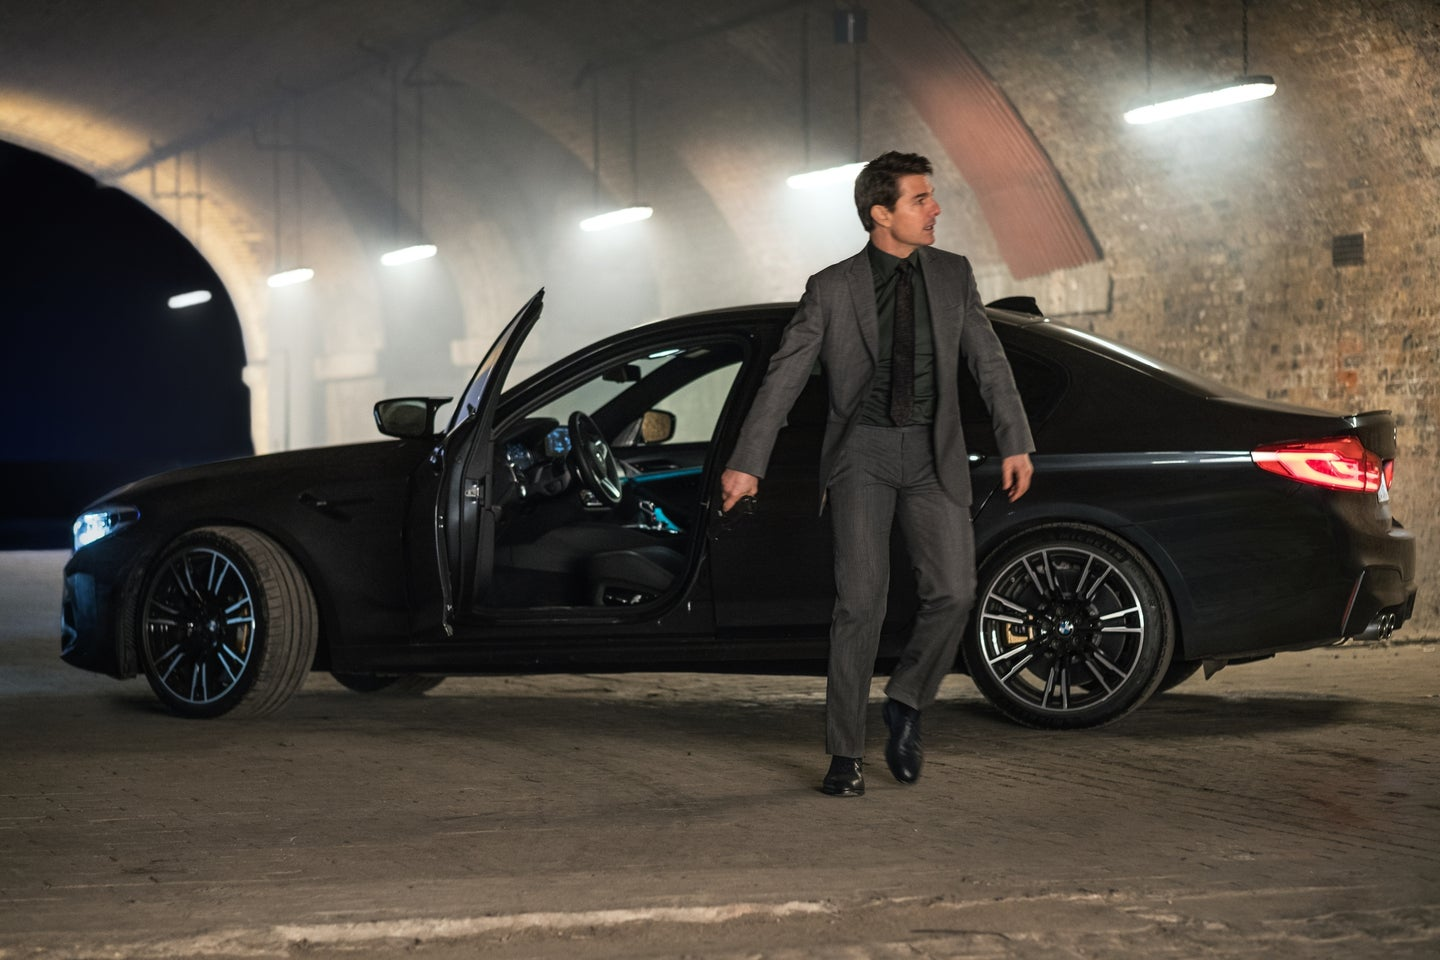 Tom Cruise Drives a BMW M5 in Mission Impossible – Fallout - Ethan Hunt With The BMW M5